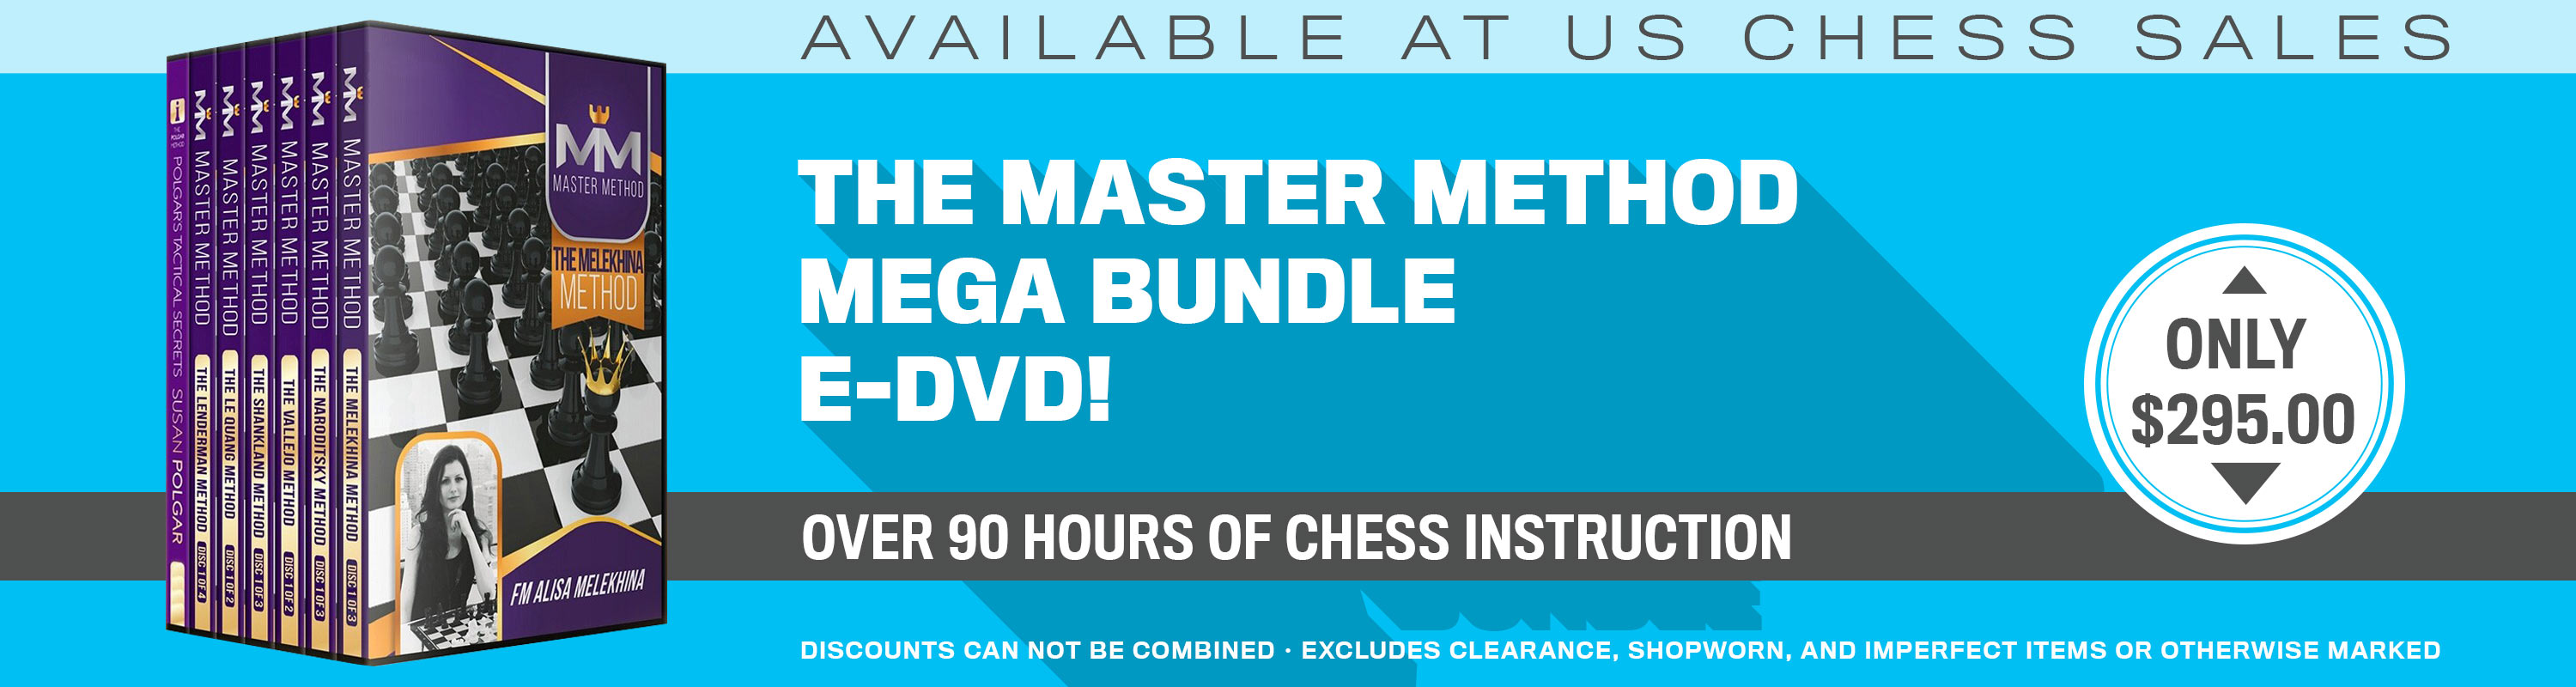 The Master Method Mega Bundle E-DVD!